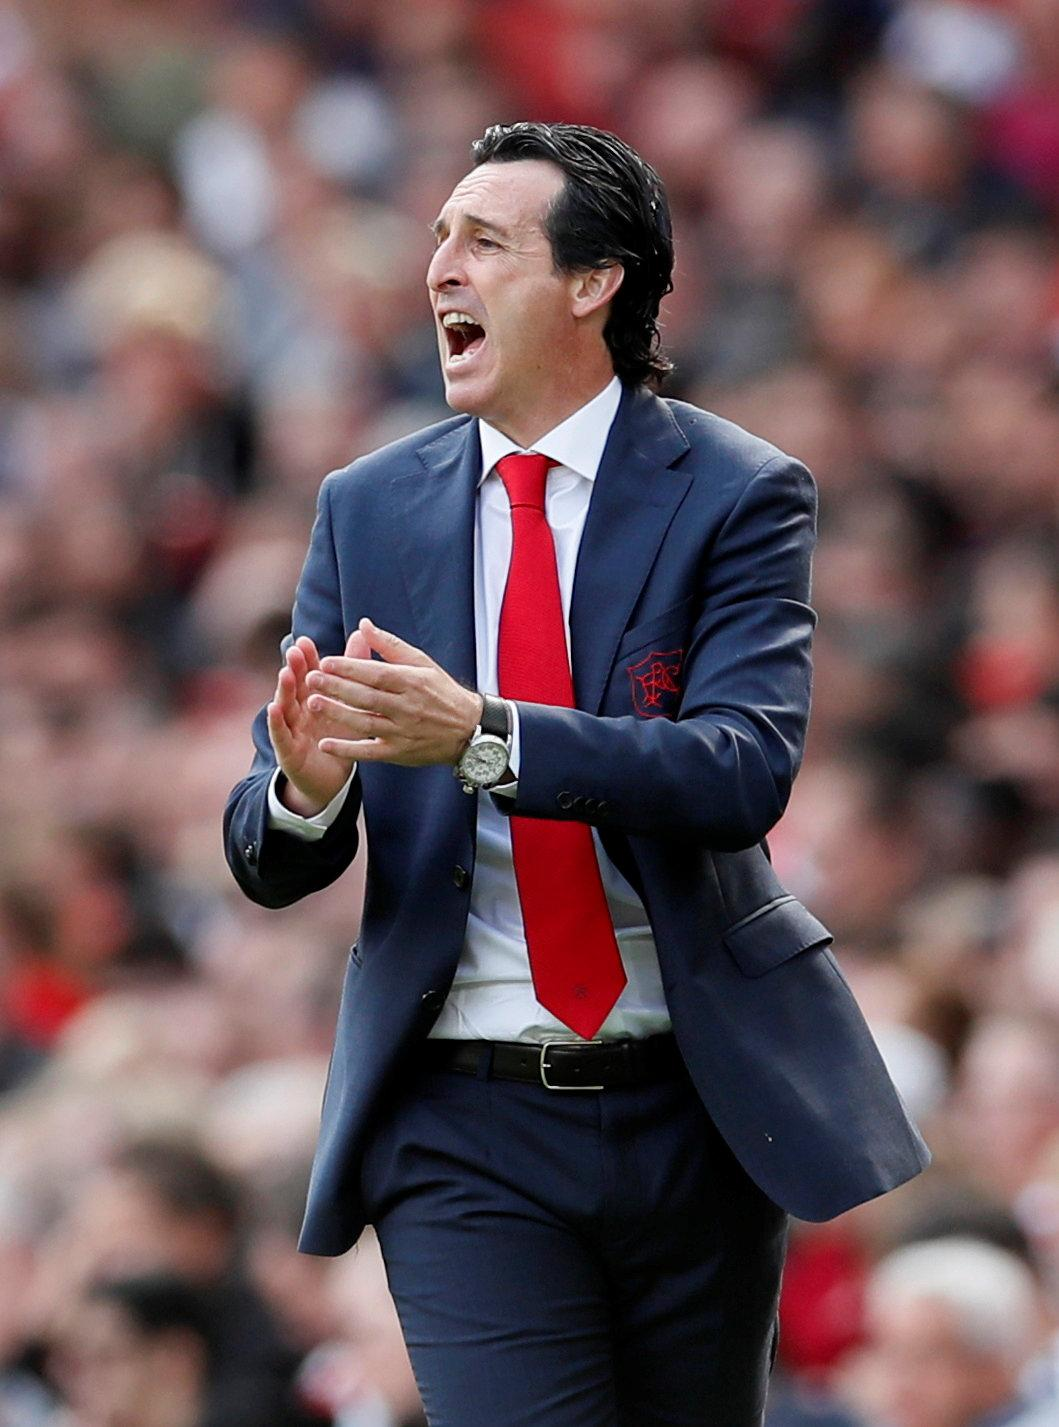 Unai Emery has won his first match in charge of Arsenal following the 3-0 win against West Ham